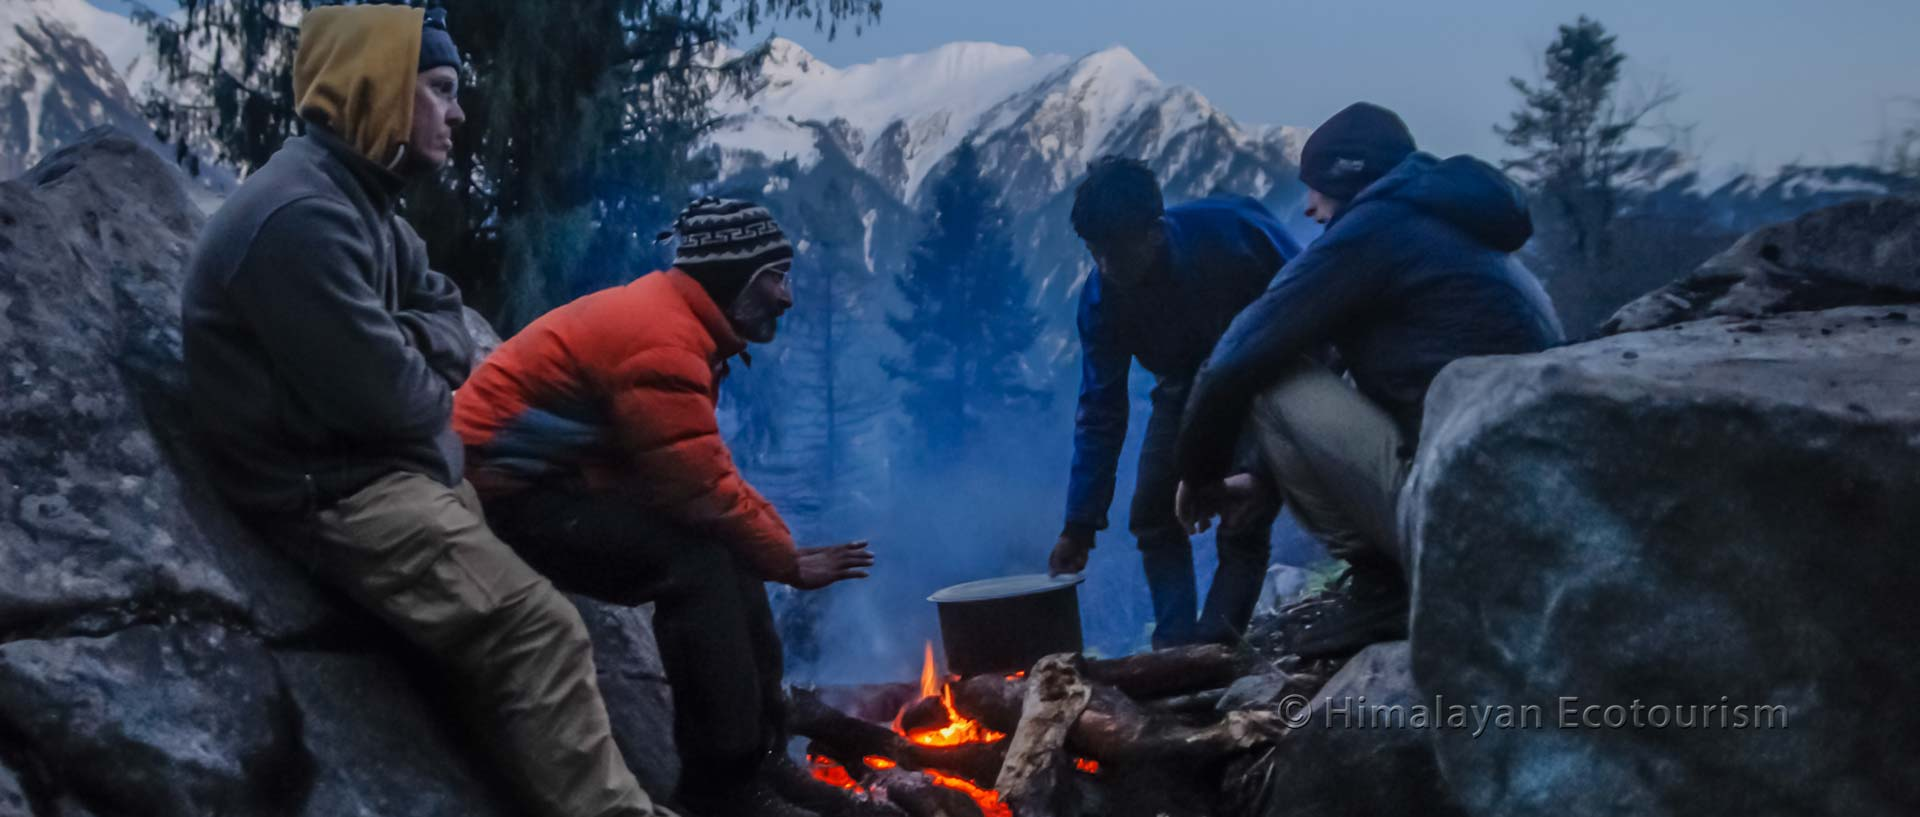 Shilt trek in the Great Himalayan National Park GHNP - campfire